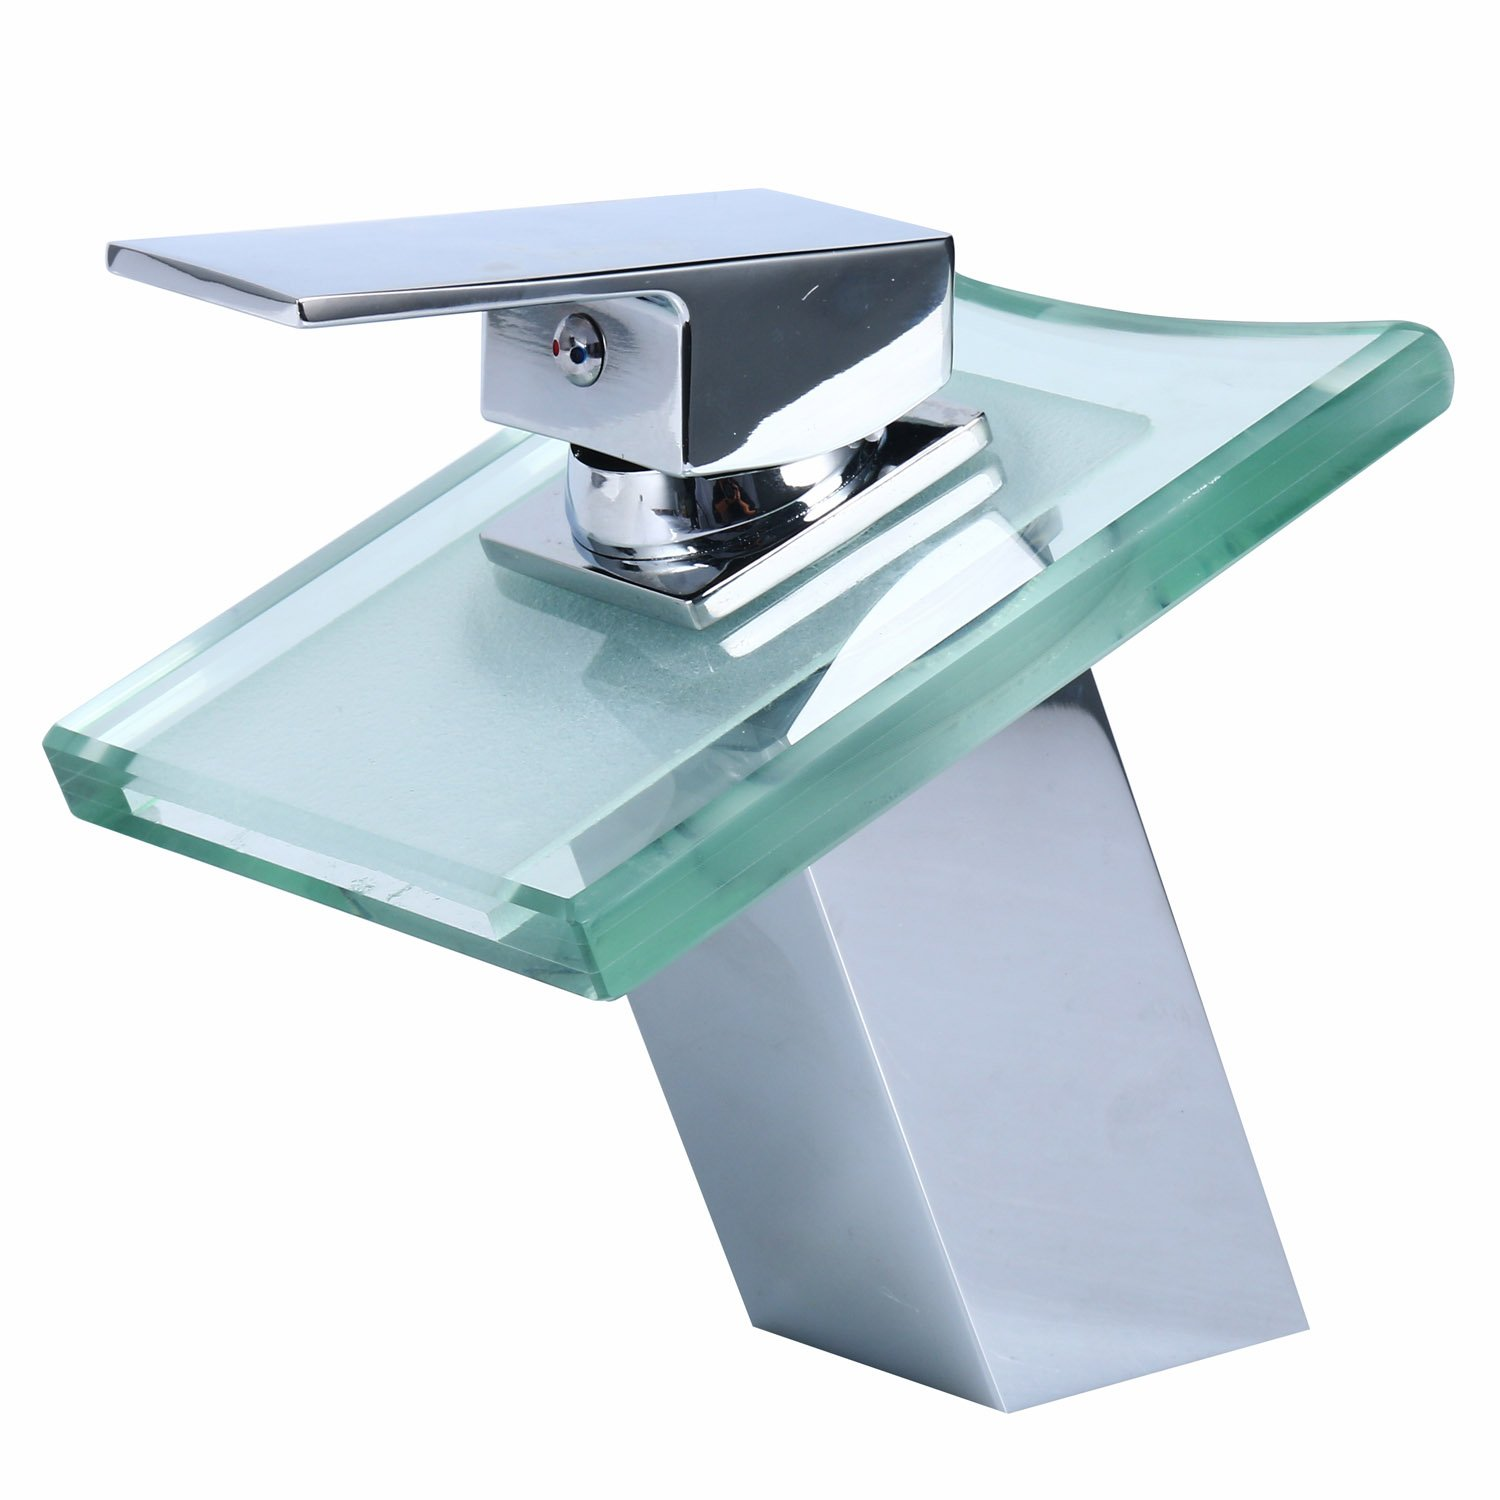 Homend Bathroom Sink LED Glass Faucet, Water Power Waterfall Bathroom Sink Faucet Deck Mount Color Changing Light LED Glass Spout Chrome Finish(Batteries are not included)